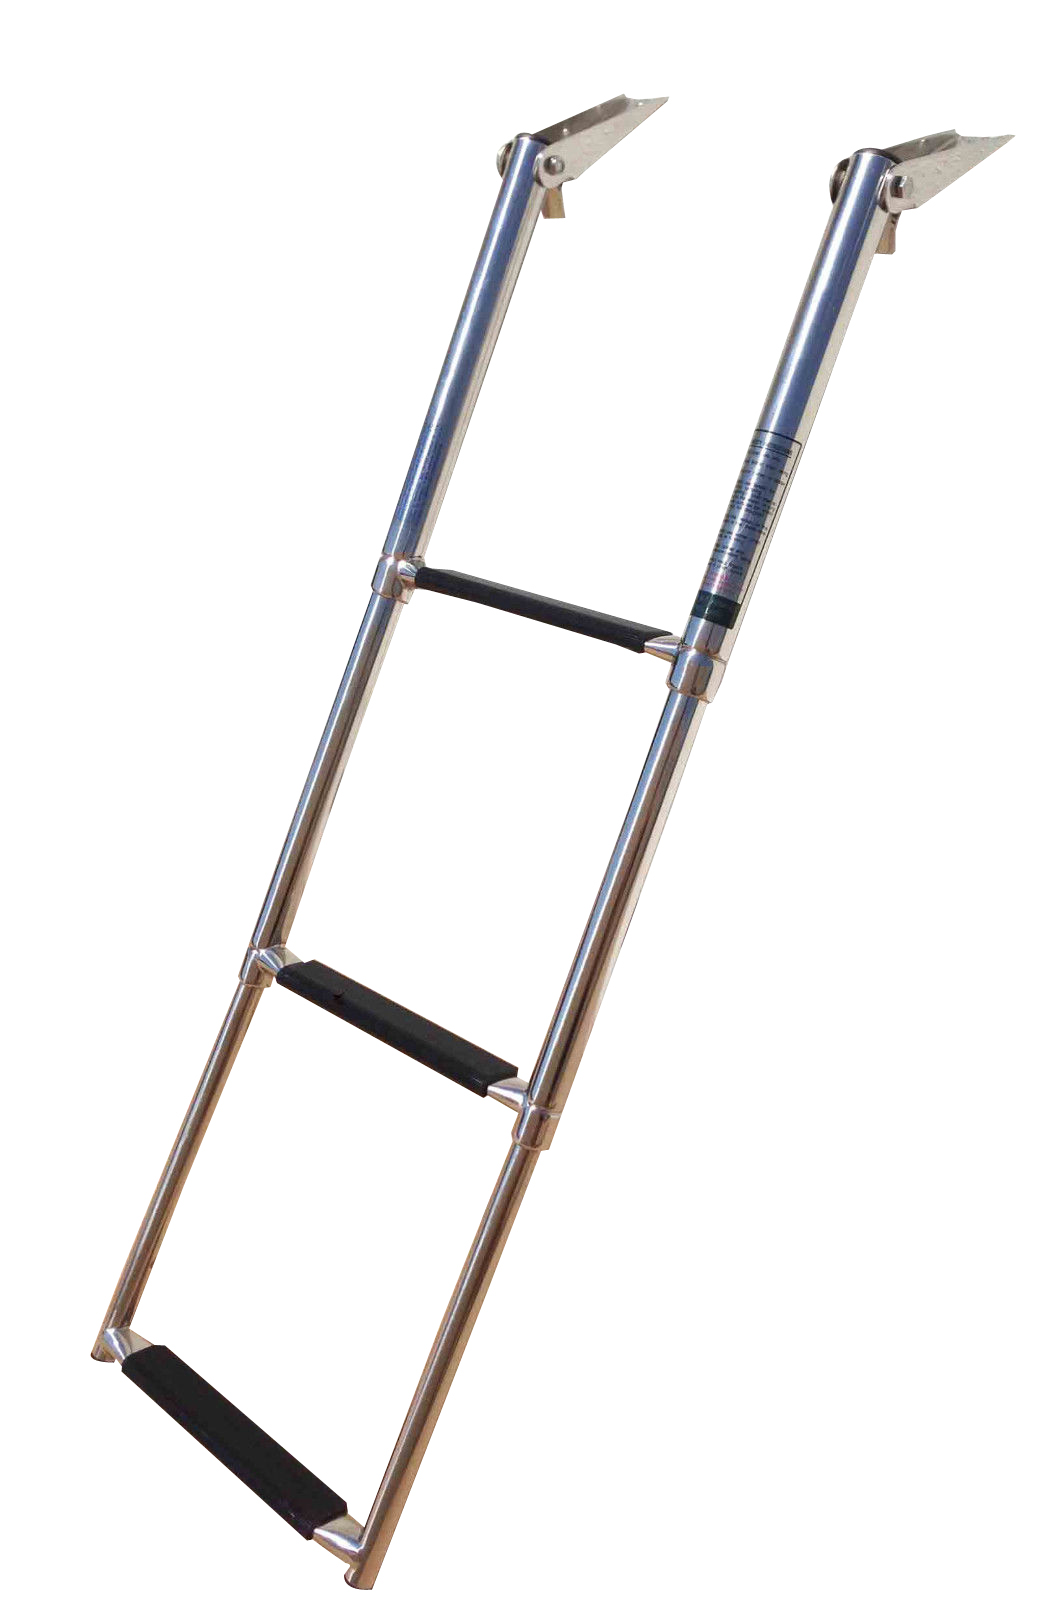 4 Step Safety Ladder With Grips